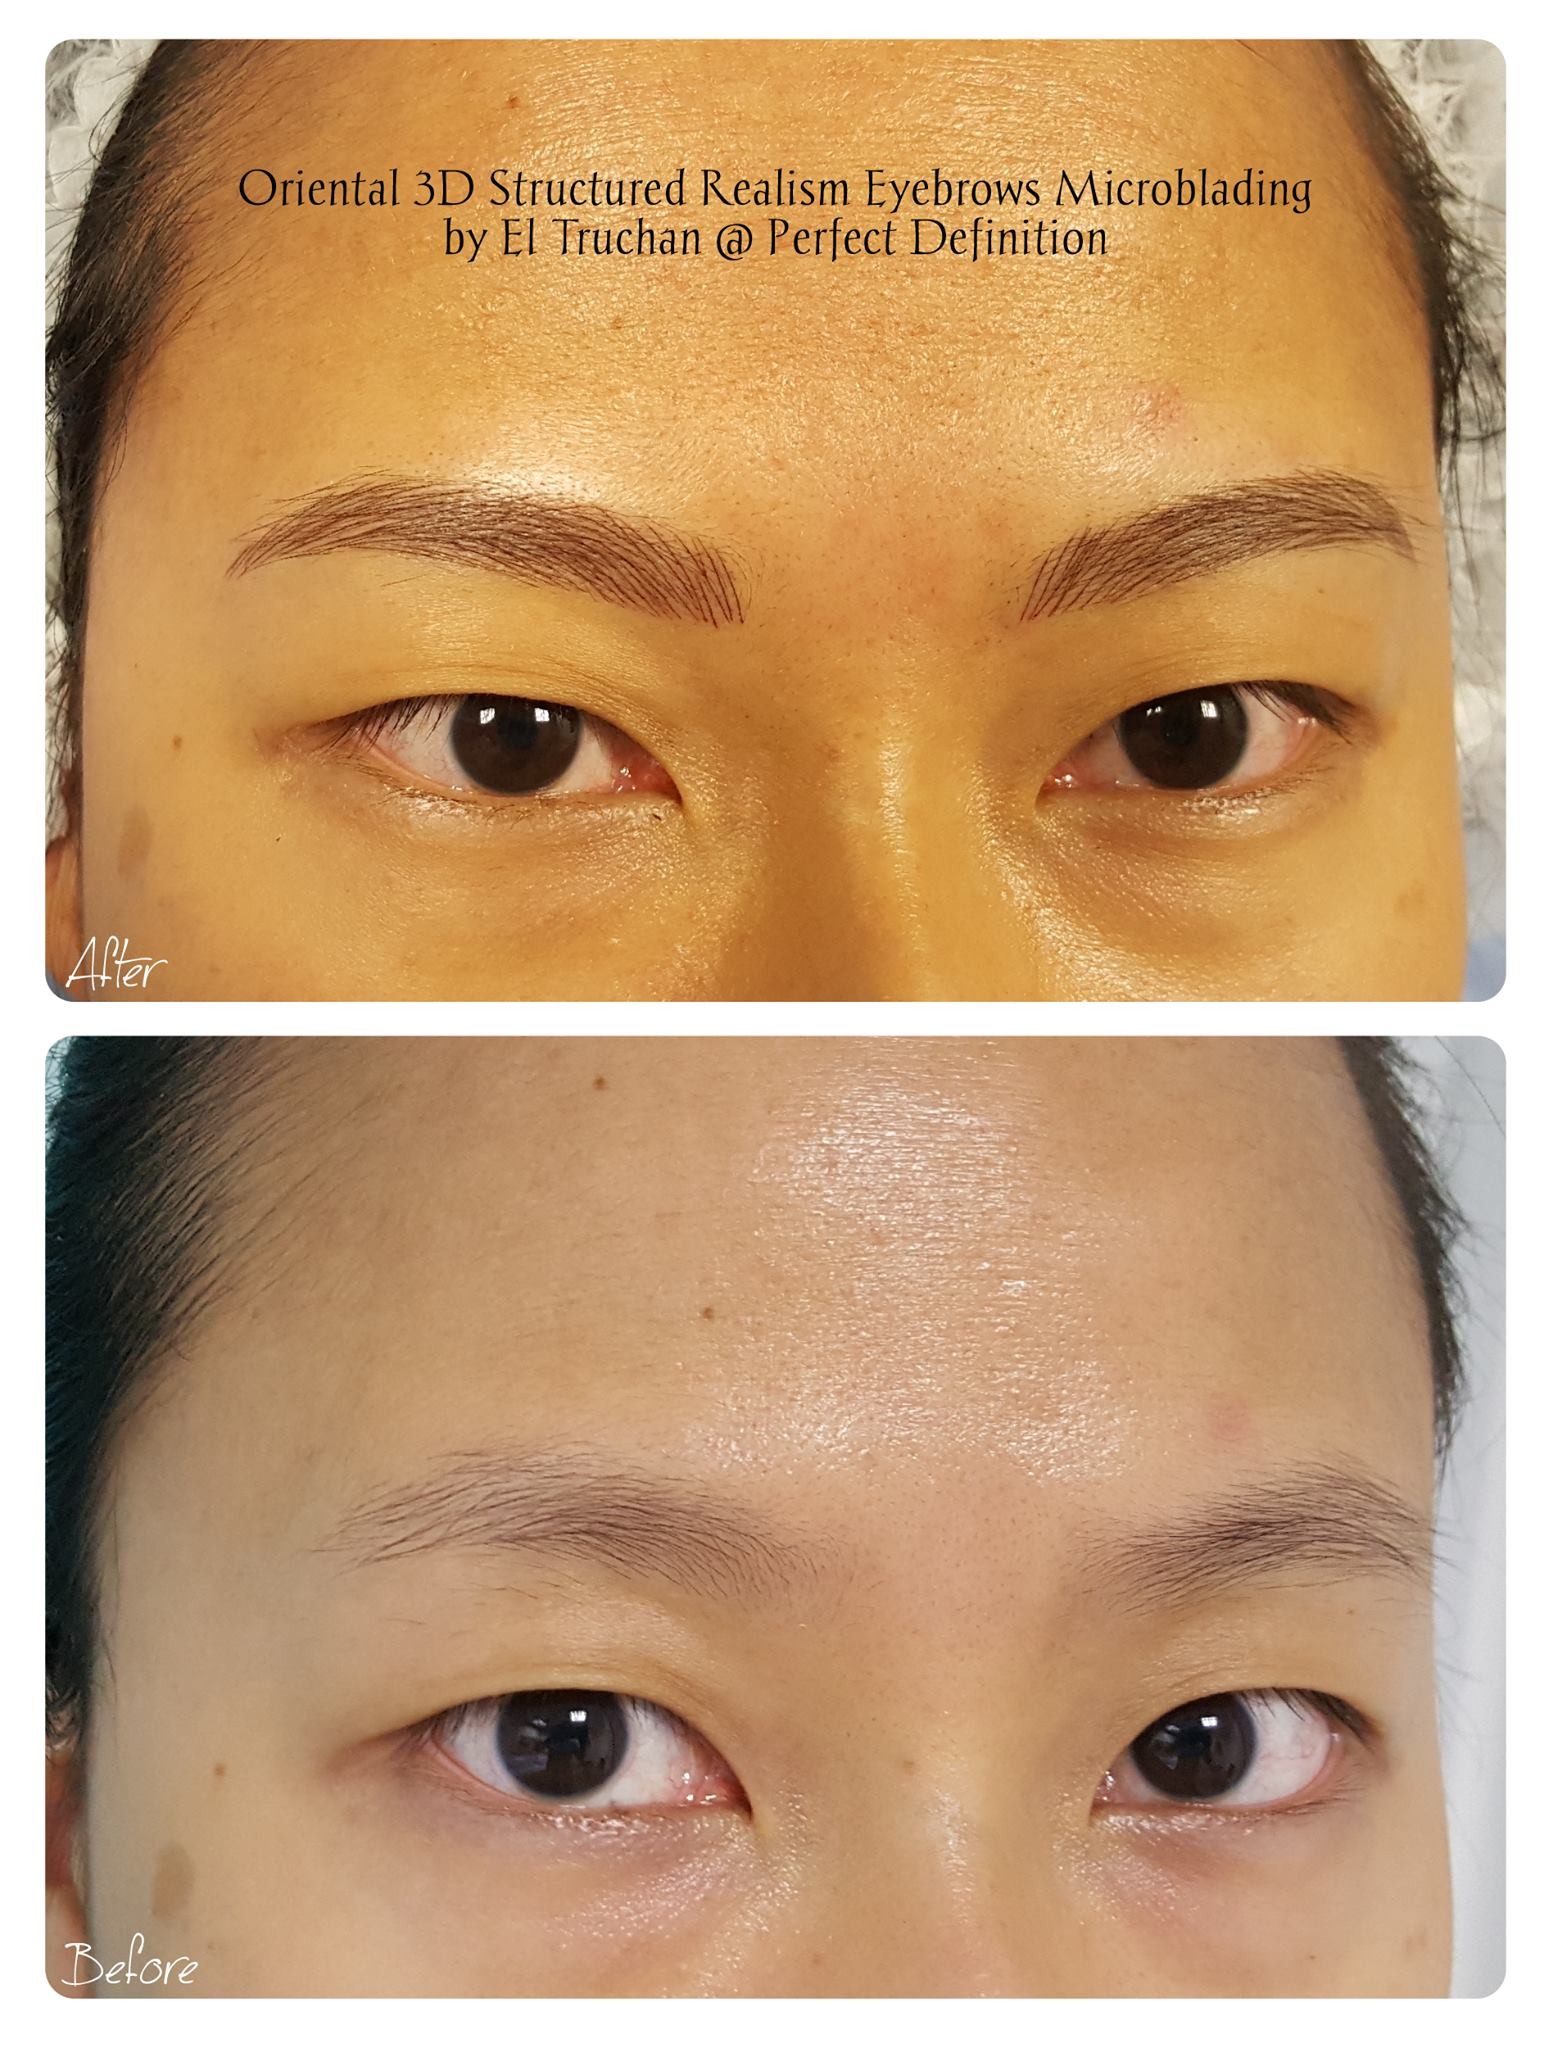 Oriental 3D Microblading Eyebrows